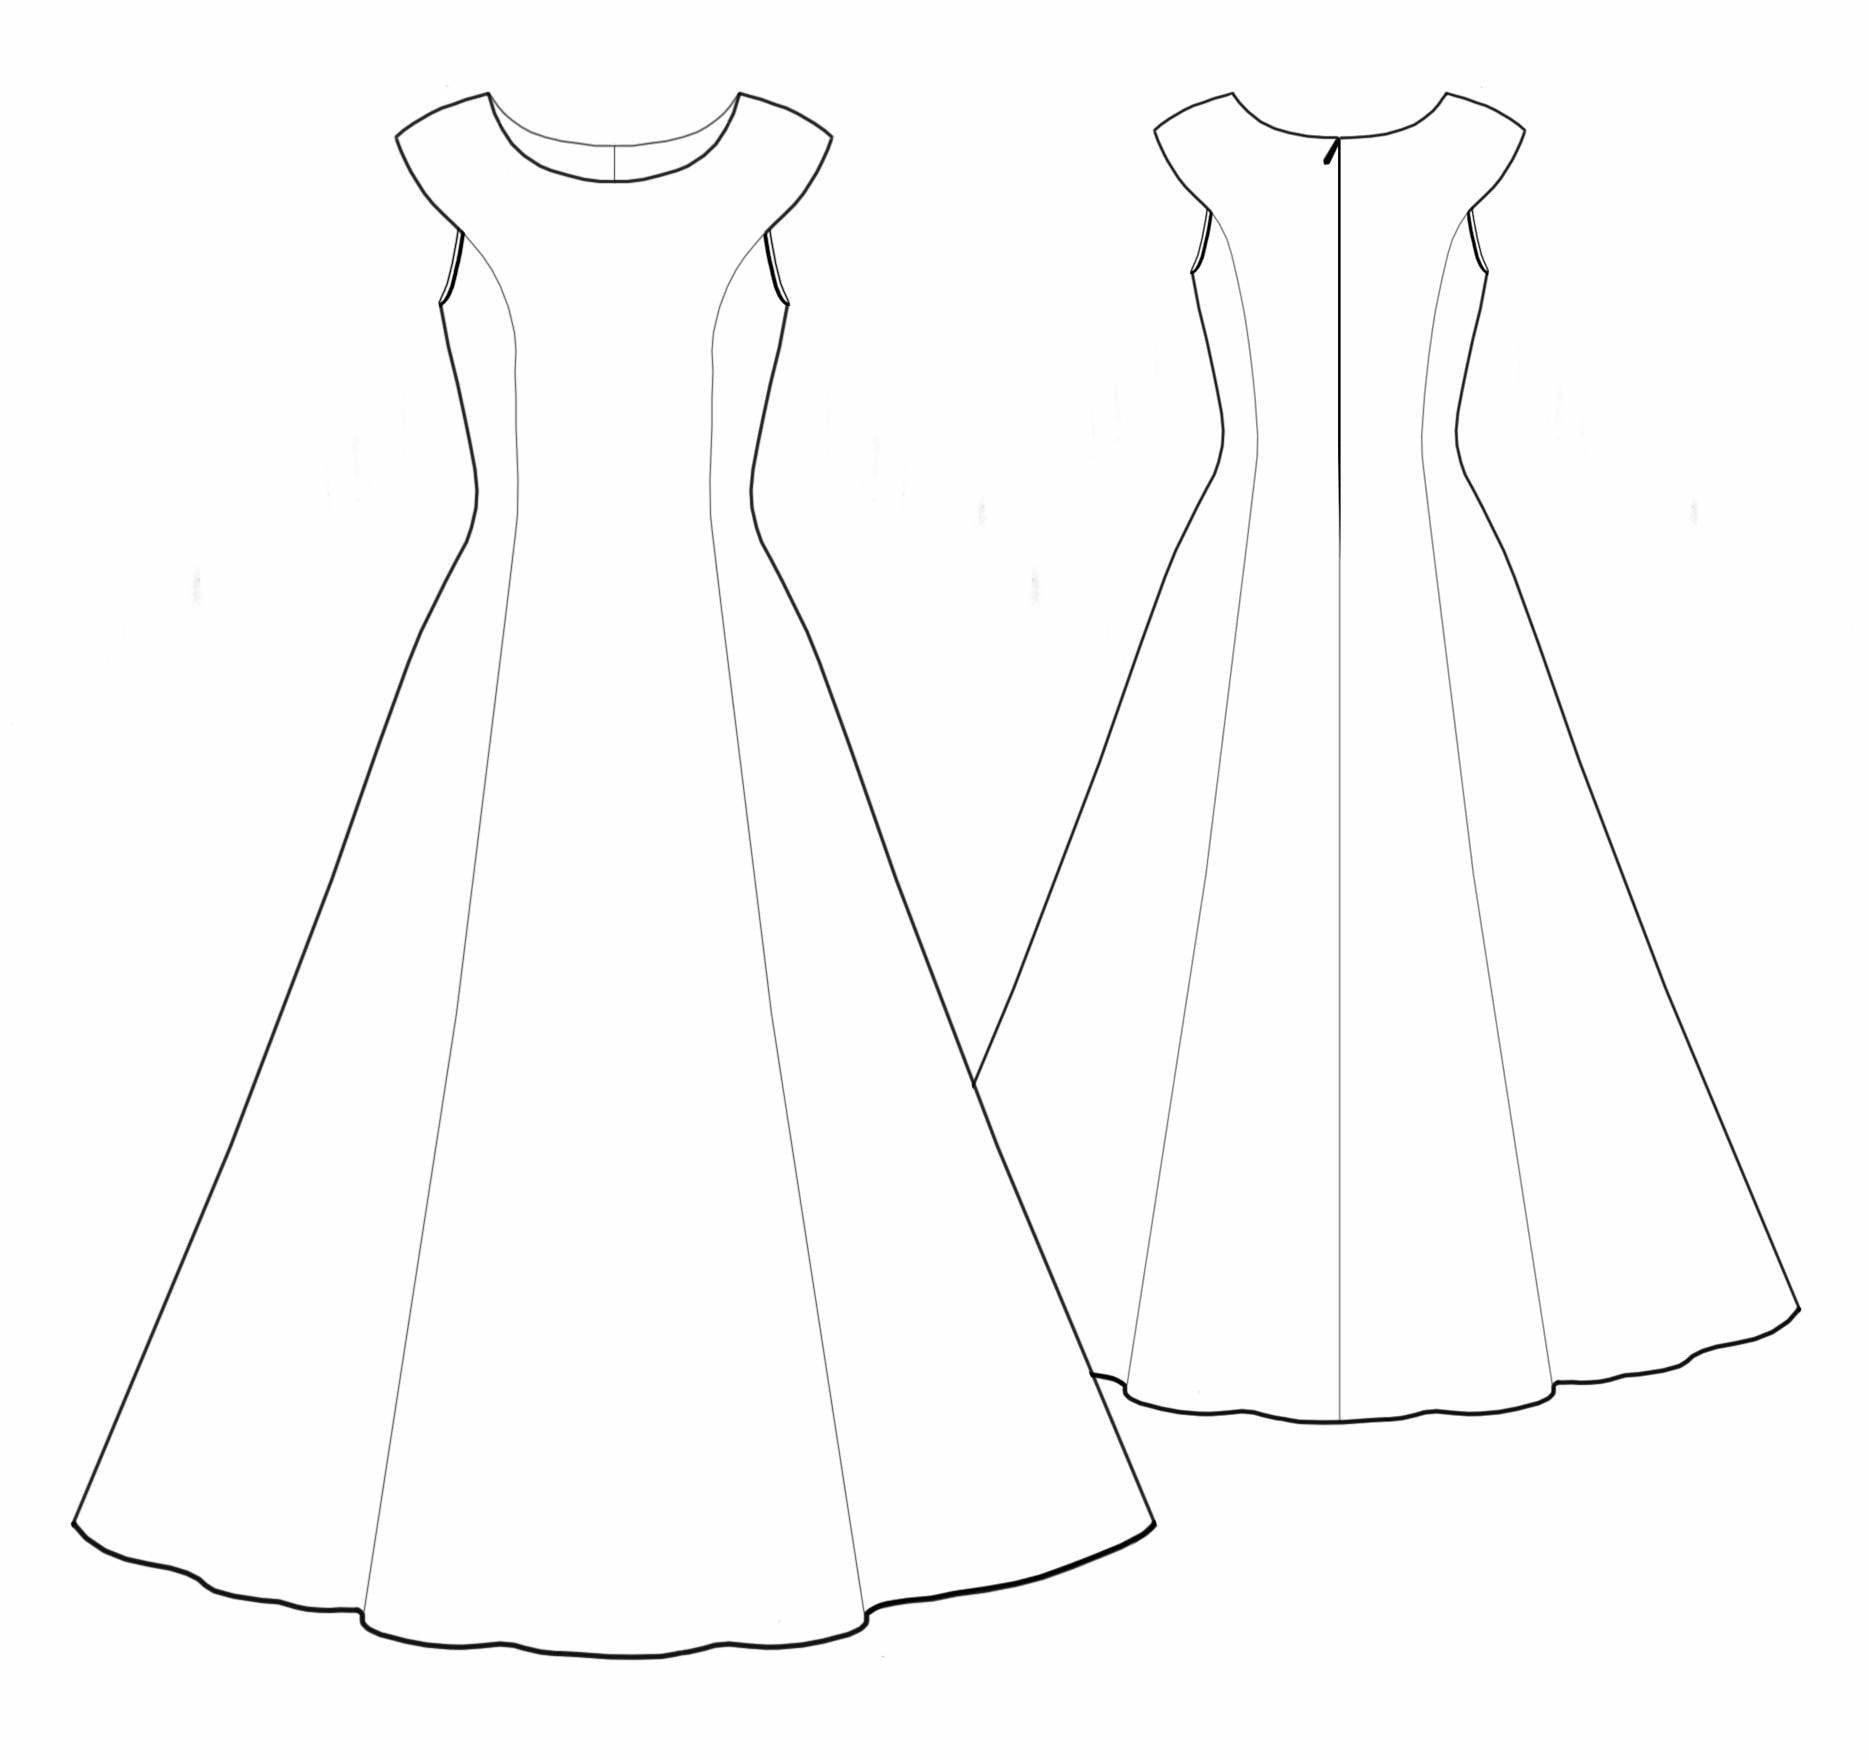 Drawn wedding dress party dress #5529 Other suggestions: Dress